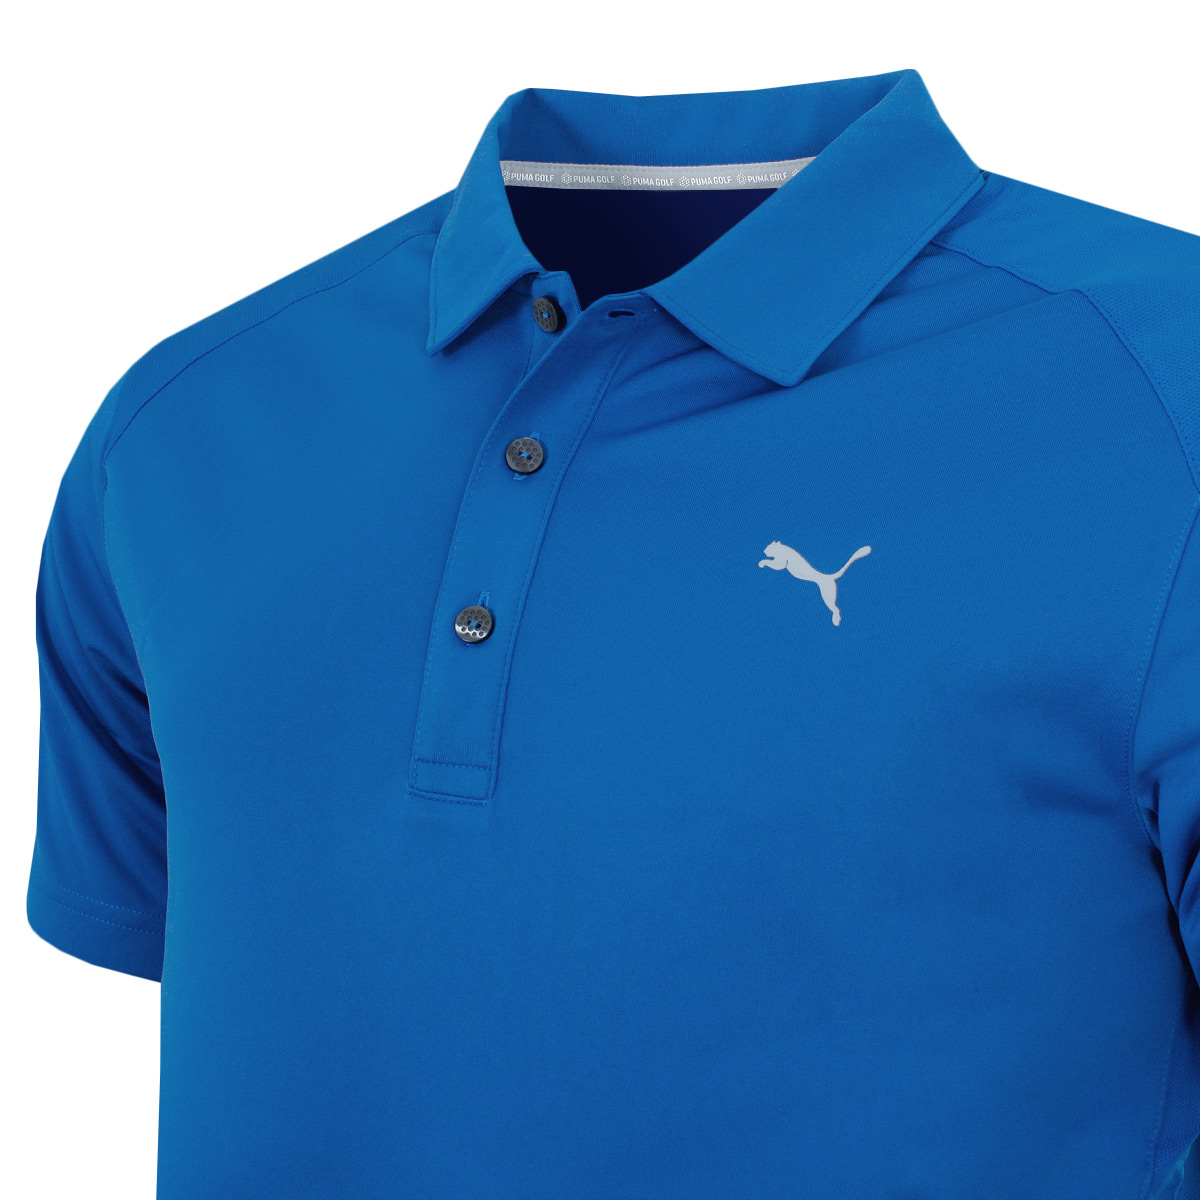 Puma-Golf-Mens-Essential-Pounce-Polo-Shirt-DryCell-Lightweight-Tech-43-OFF-RRP thumbnail 28